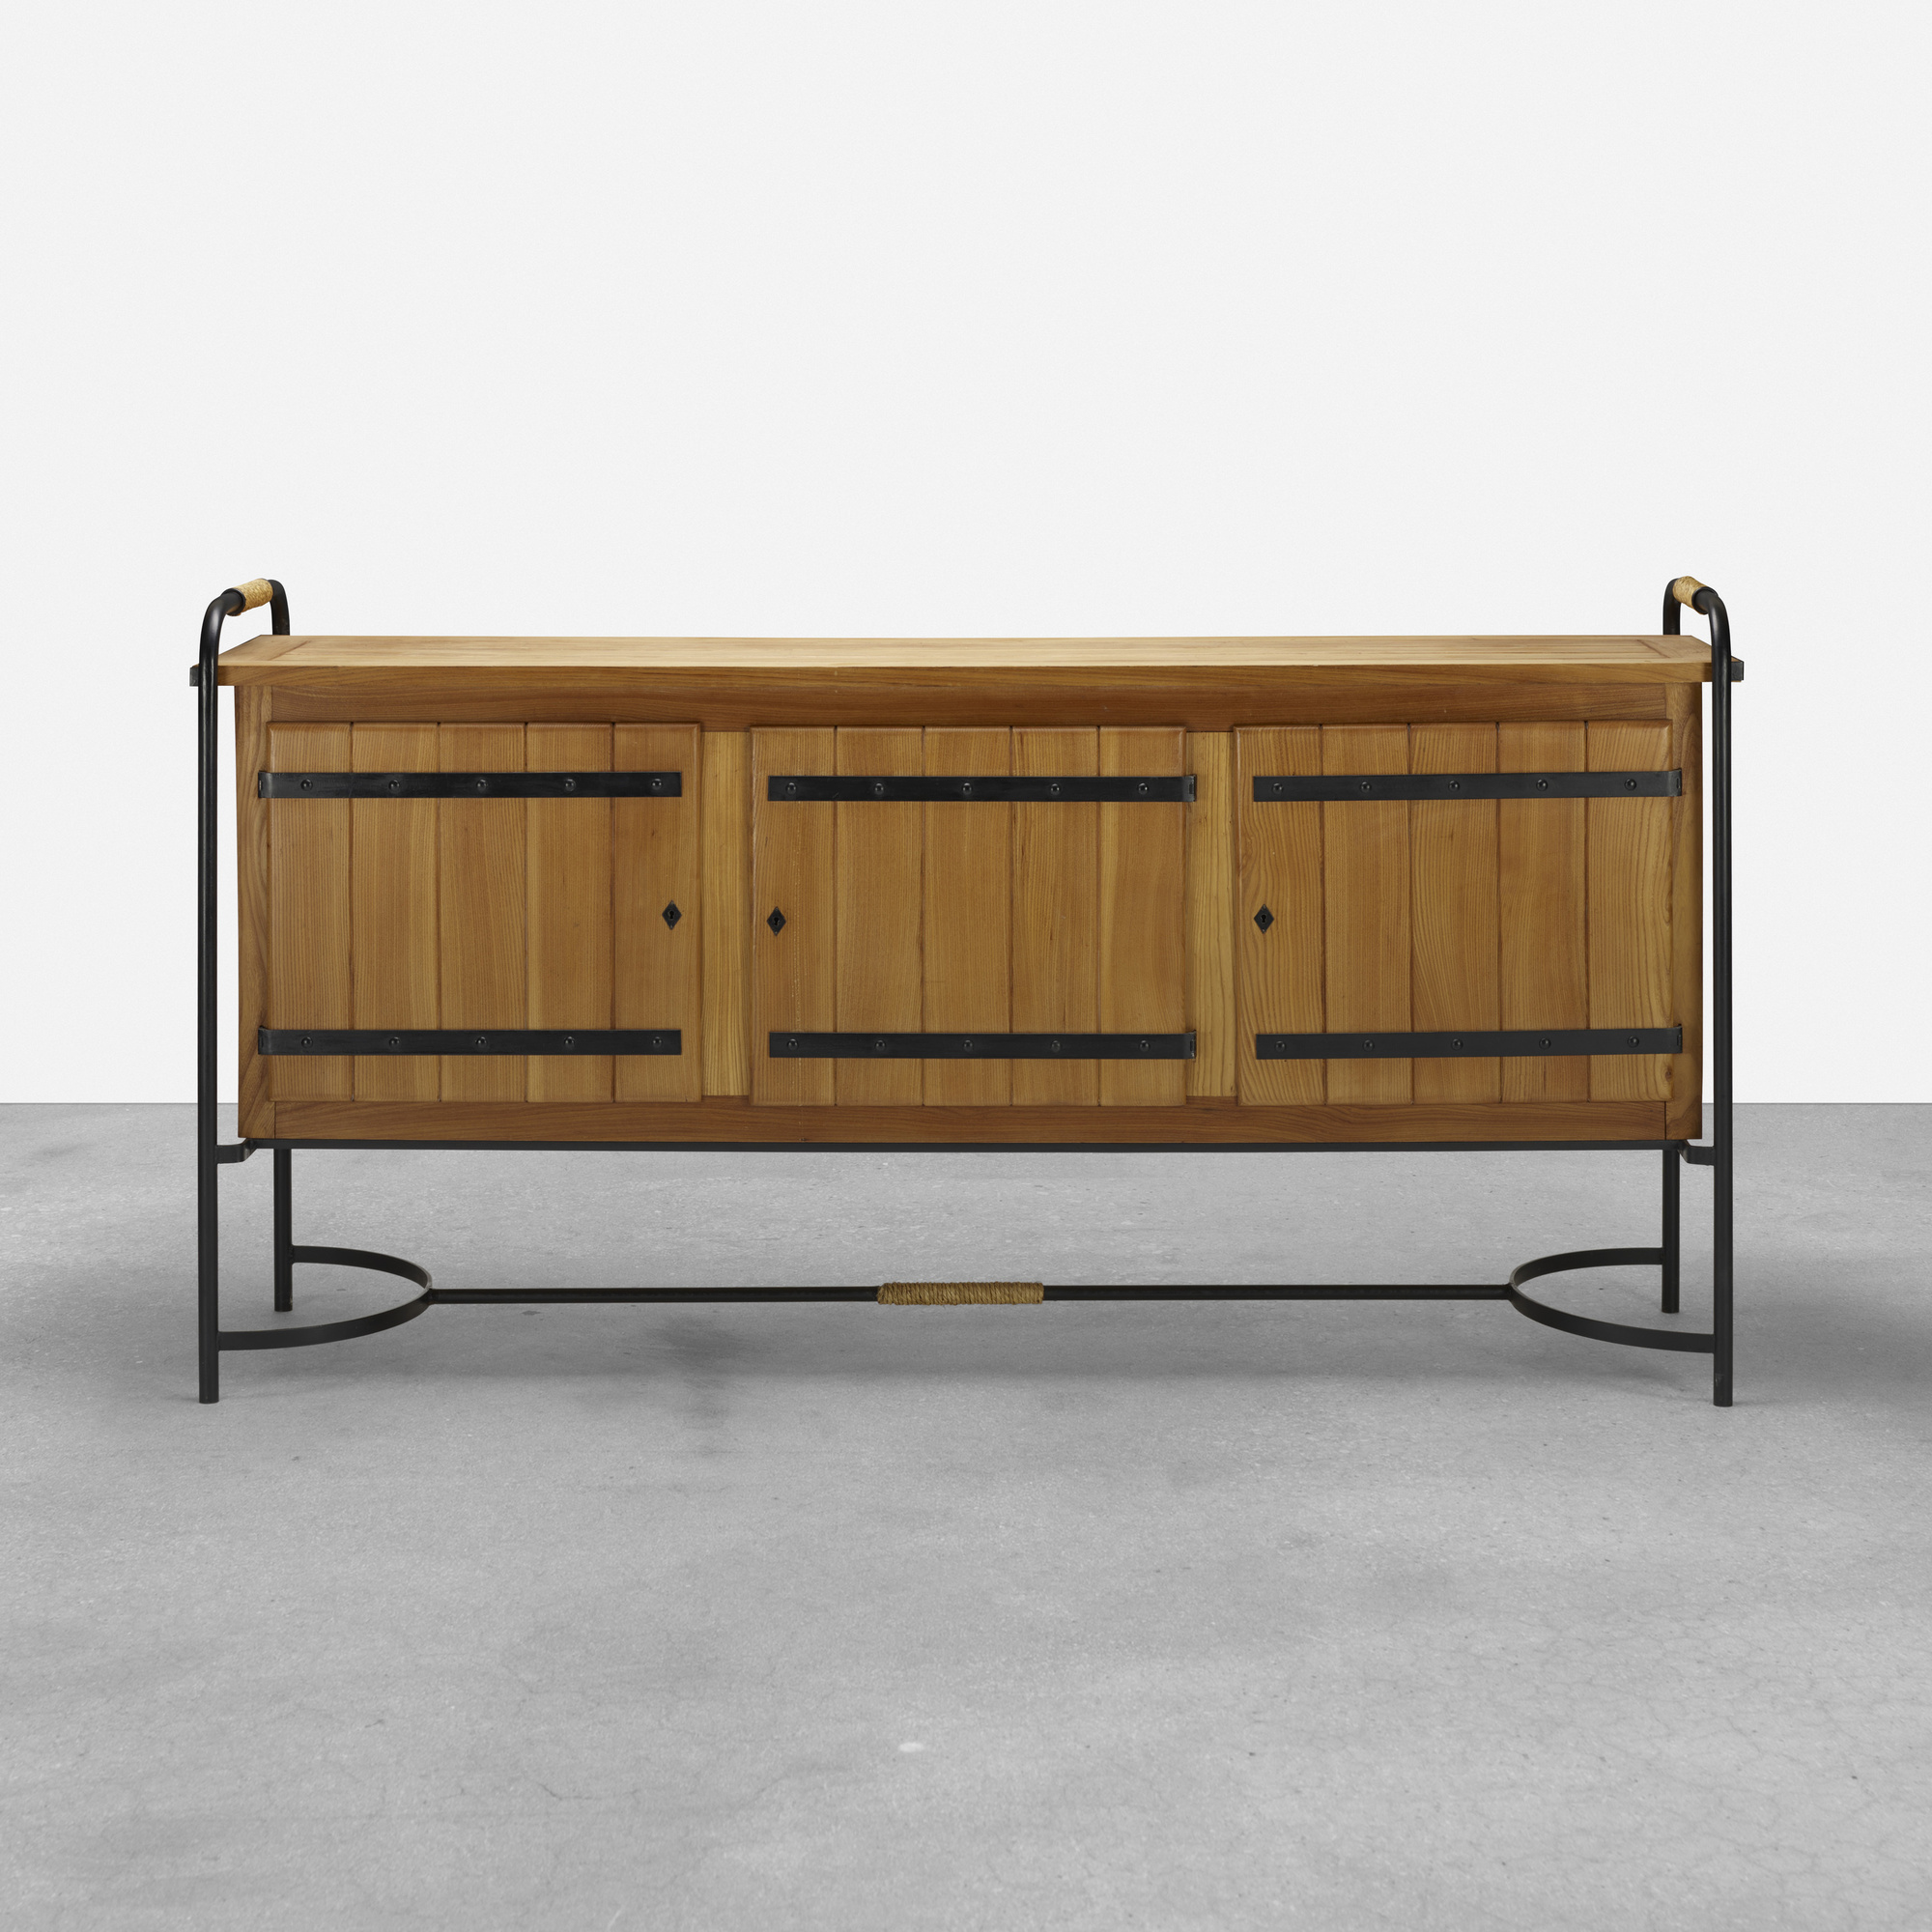 397: Jacques Adnet / cabinet (1 of 3)